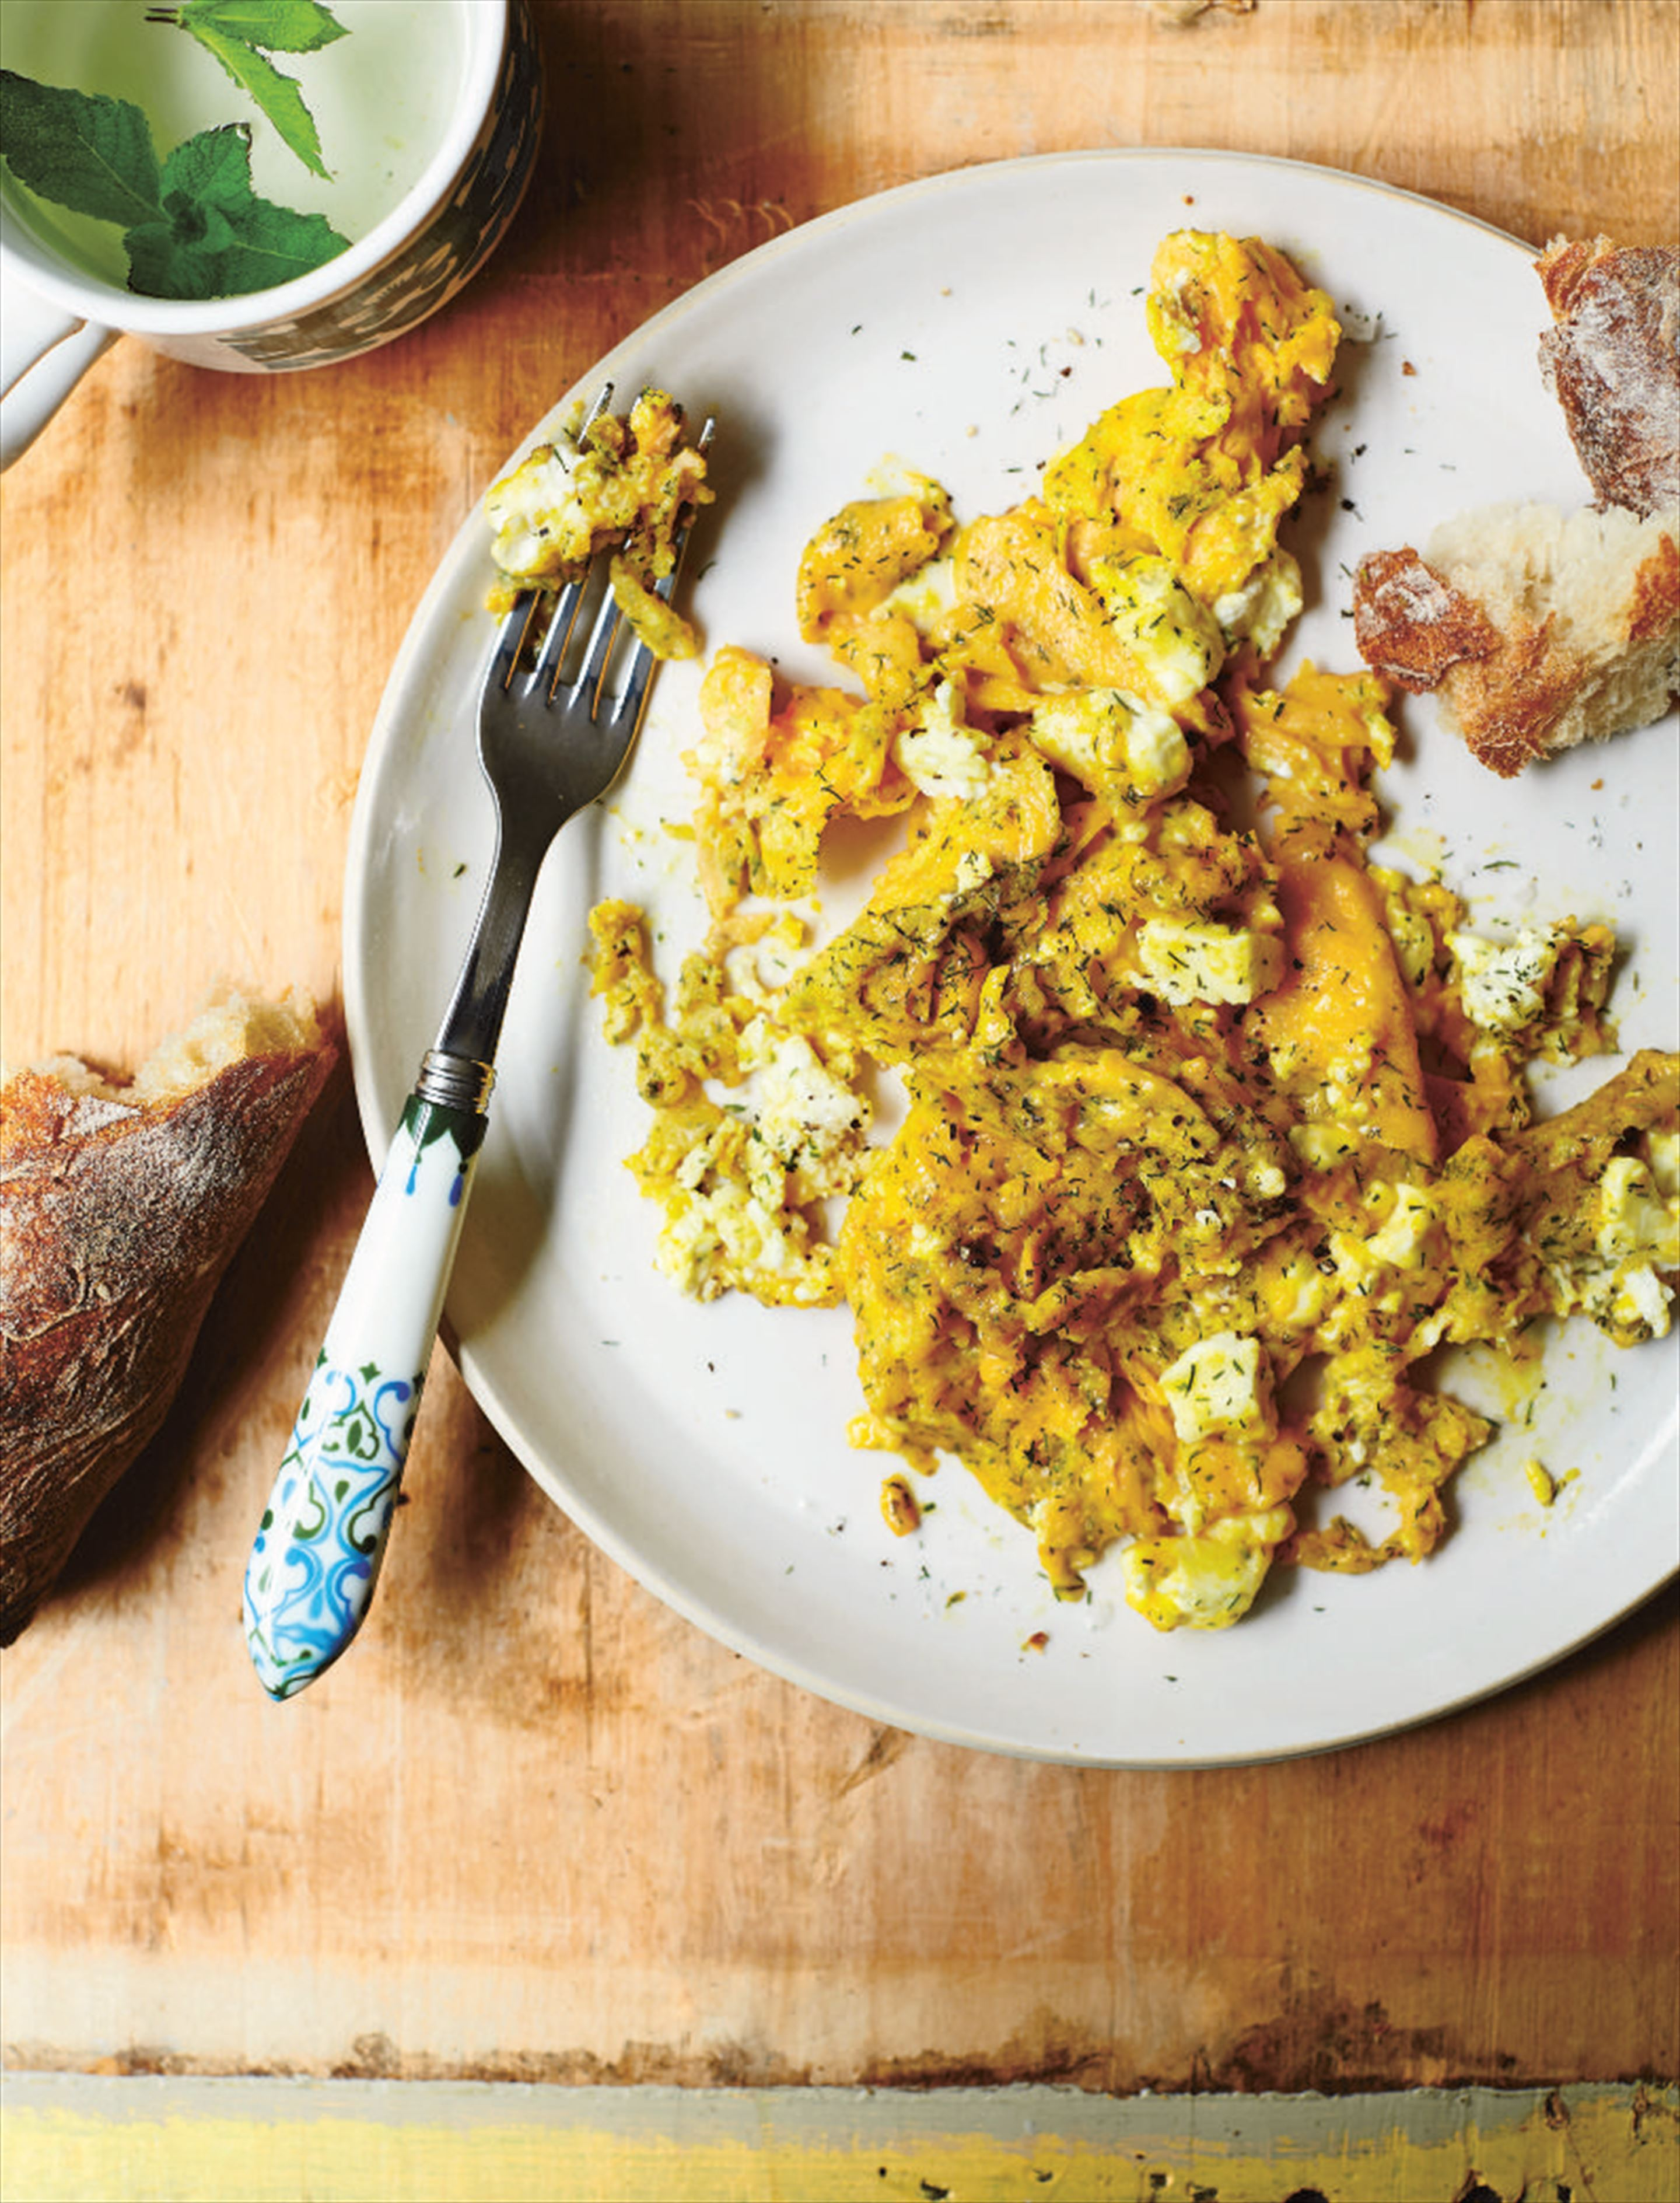 Scrambled eggs with feta and dill